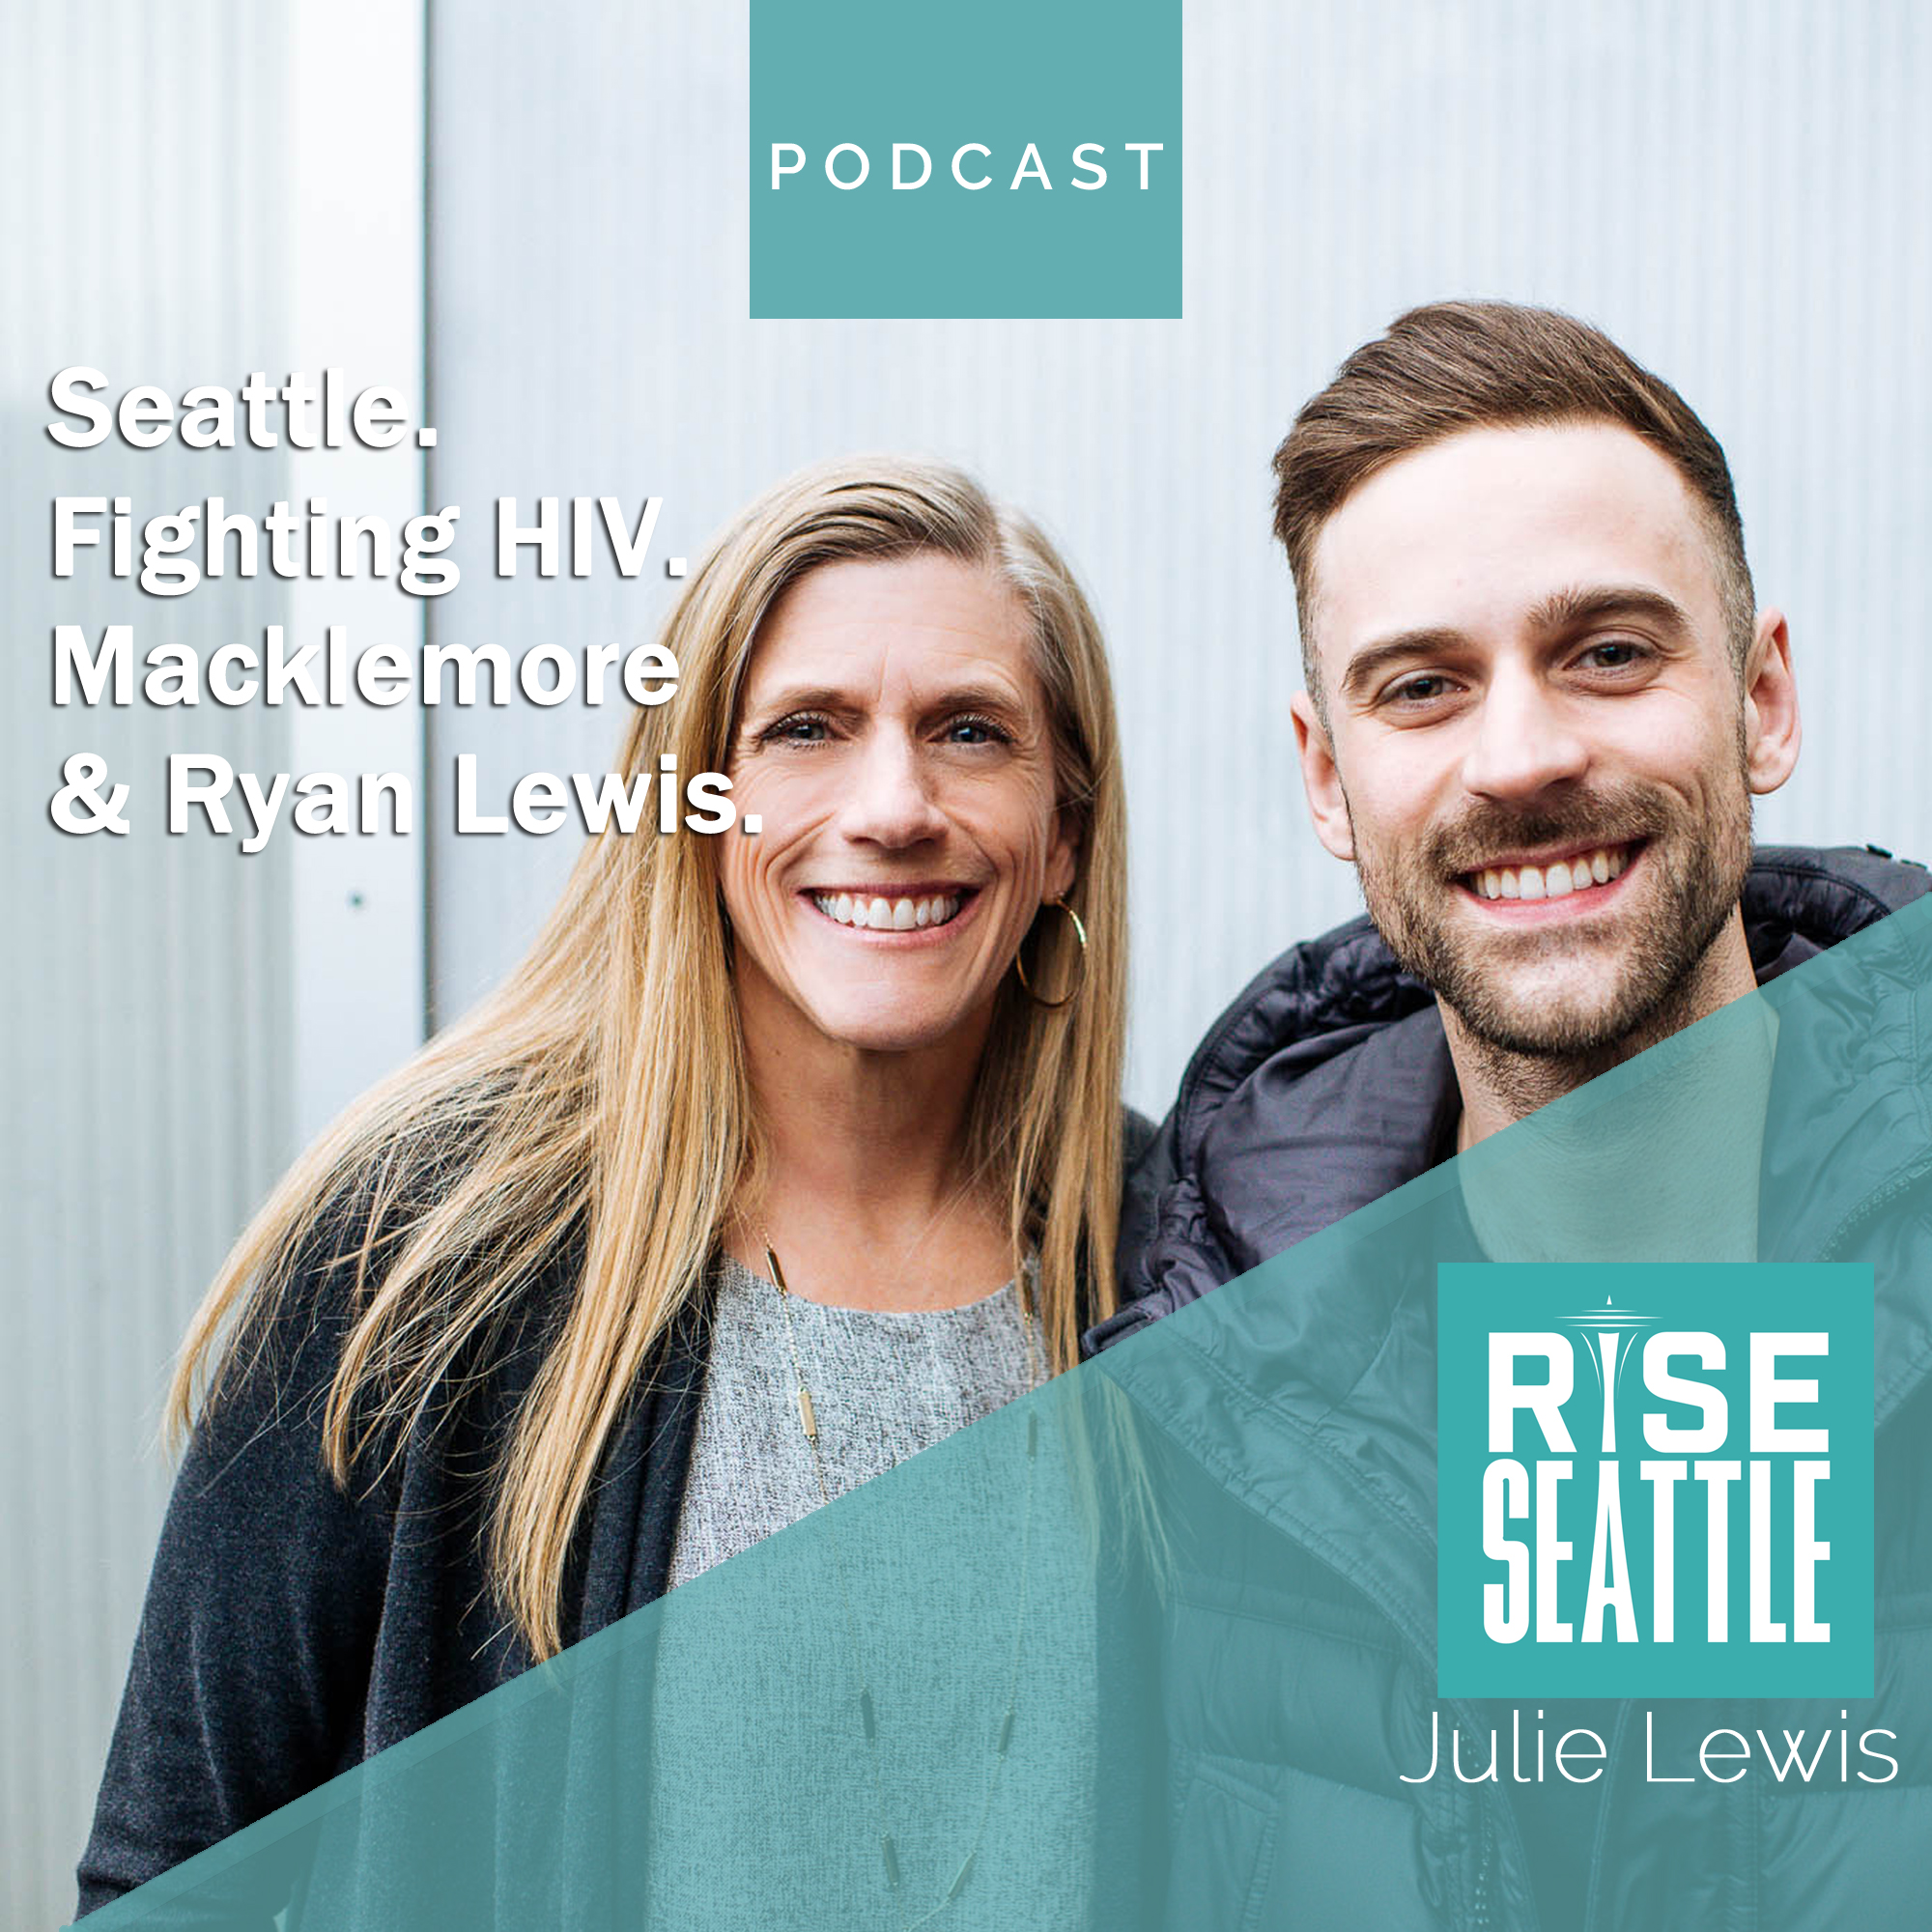 S1.E2. Julie Lewis: A Seattle local on surviving HIV and leaving a legacy